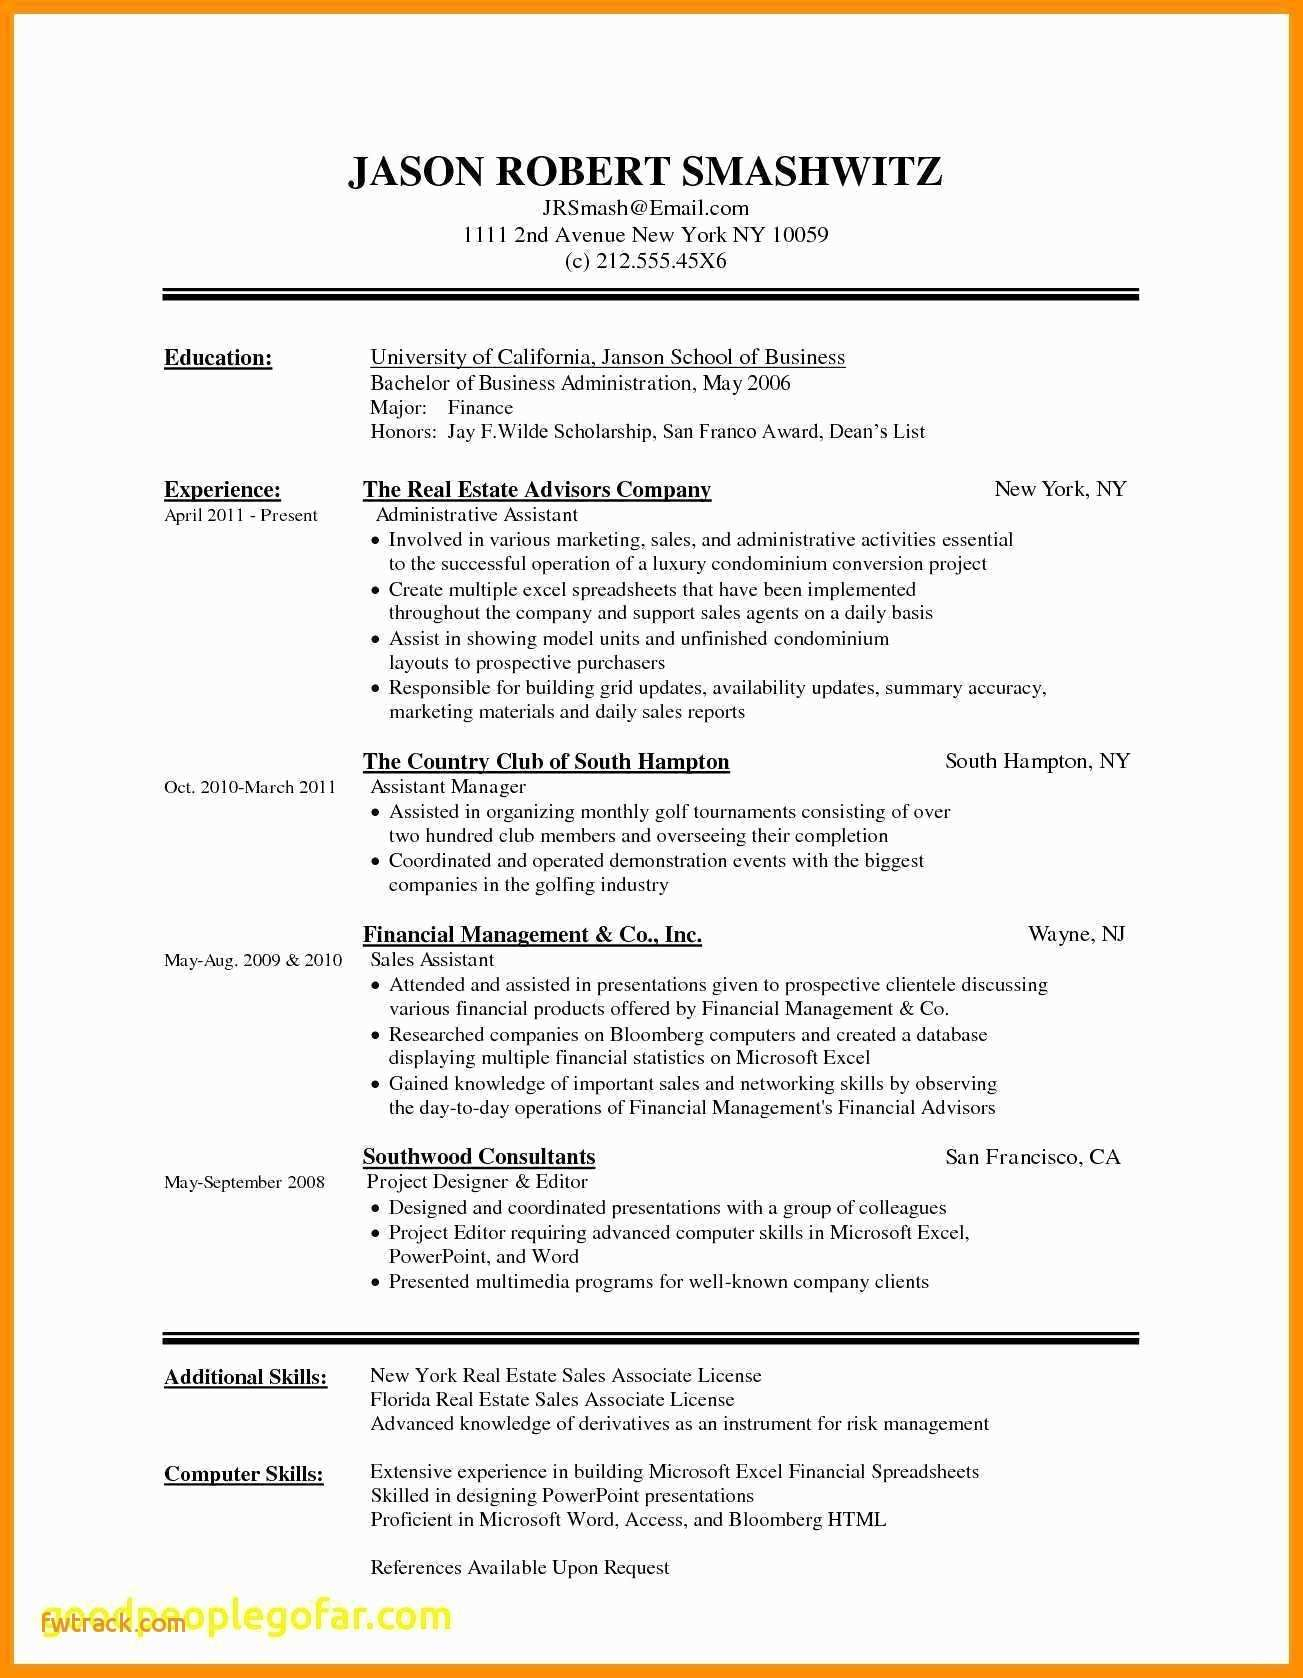 Resume Template Mac Pages - Resume Templates for Pages Fwtrack Fwtrack